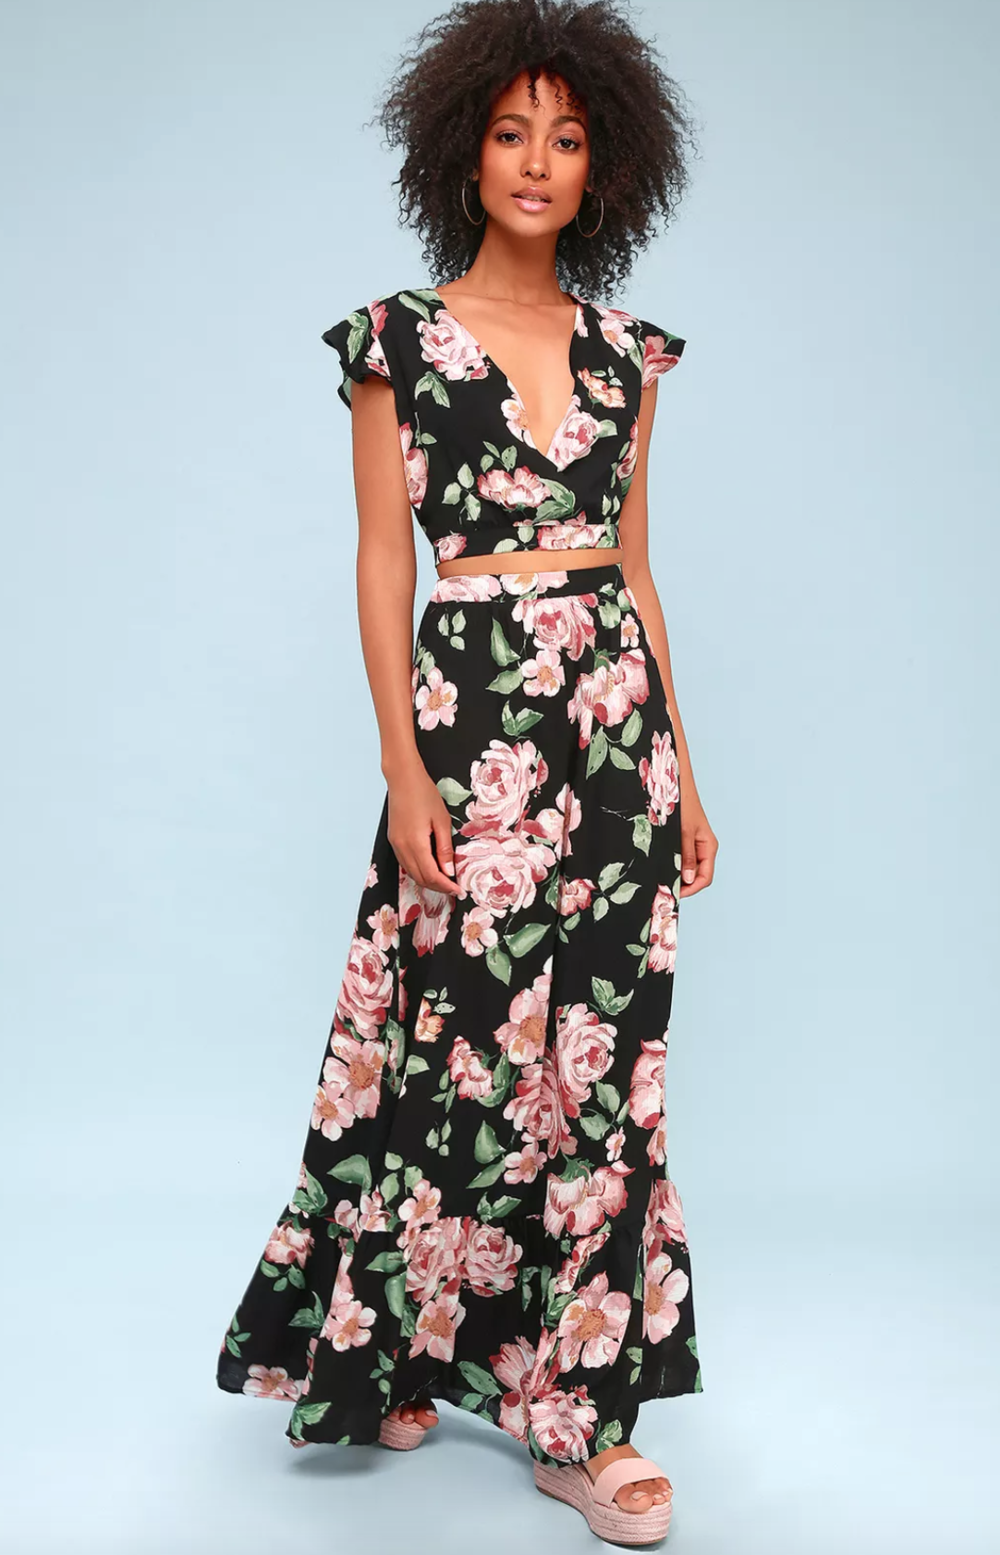 Black Floral Two piece dress